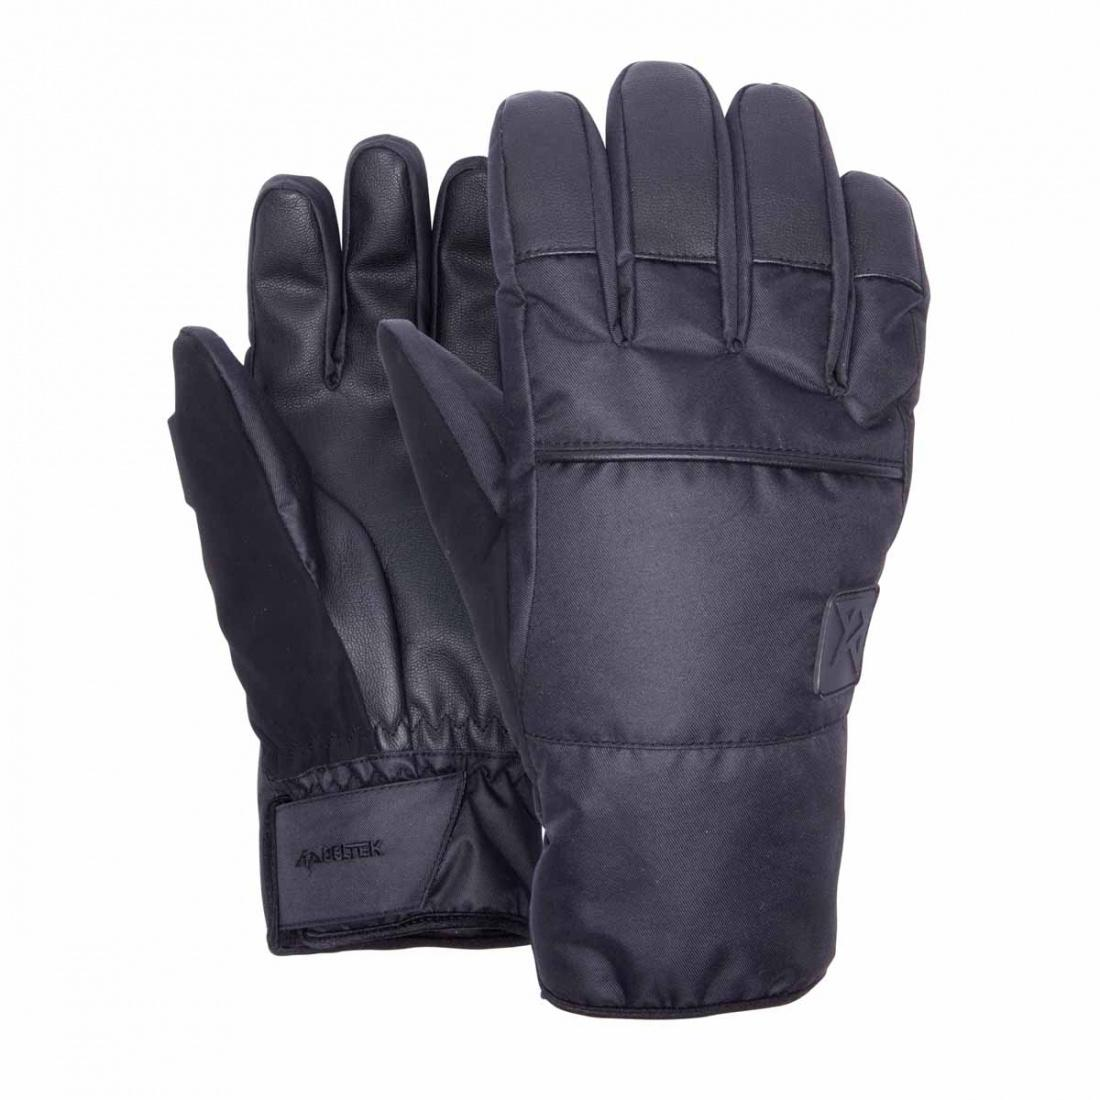 CELTEK Перчатки Celtek Ace Glove Black M